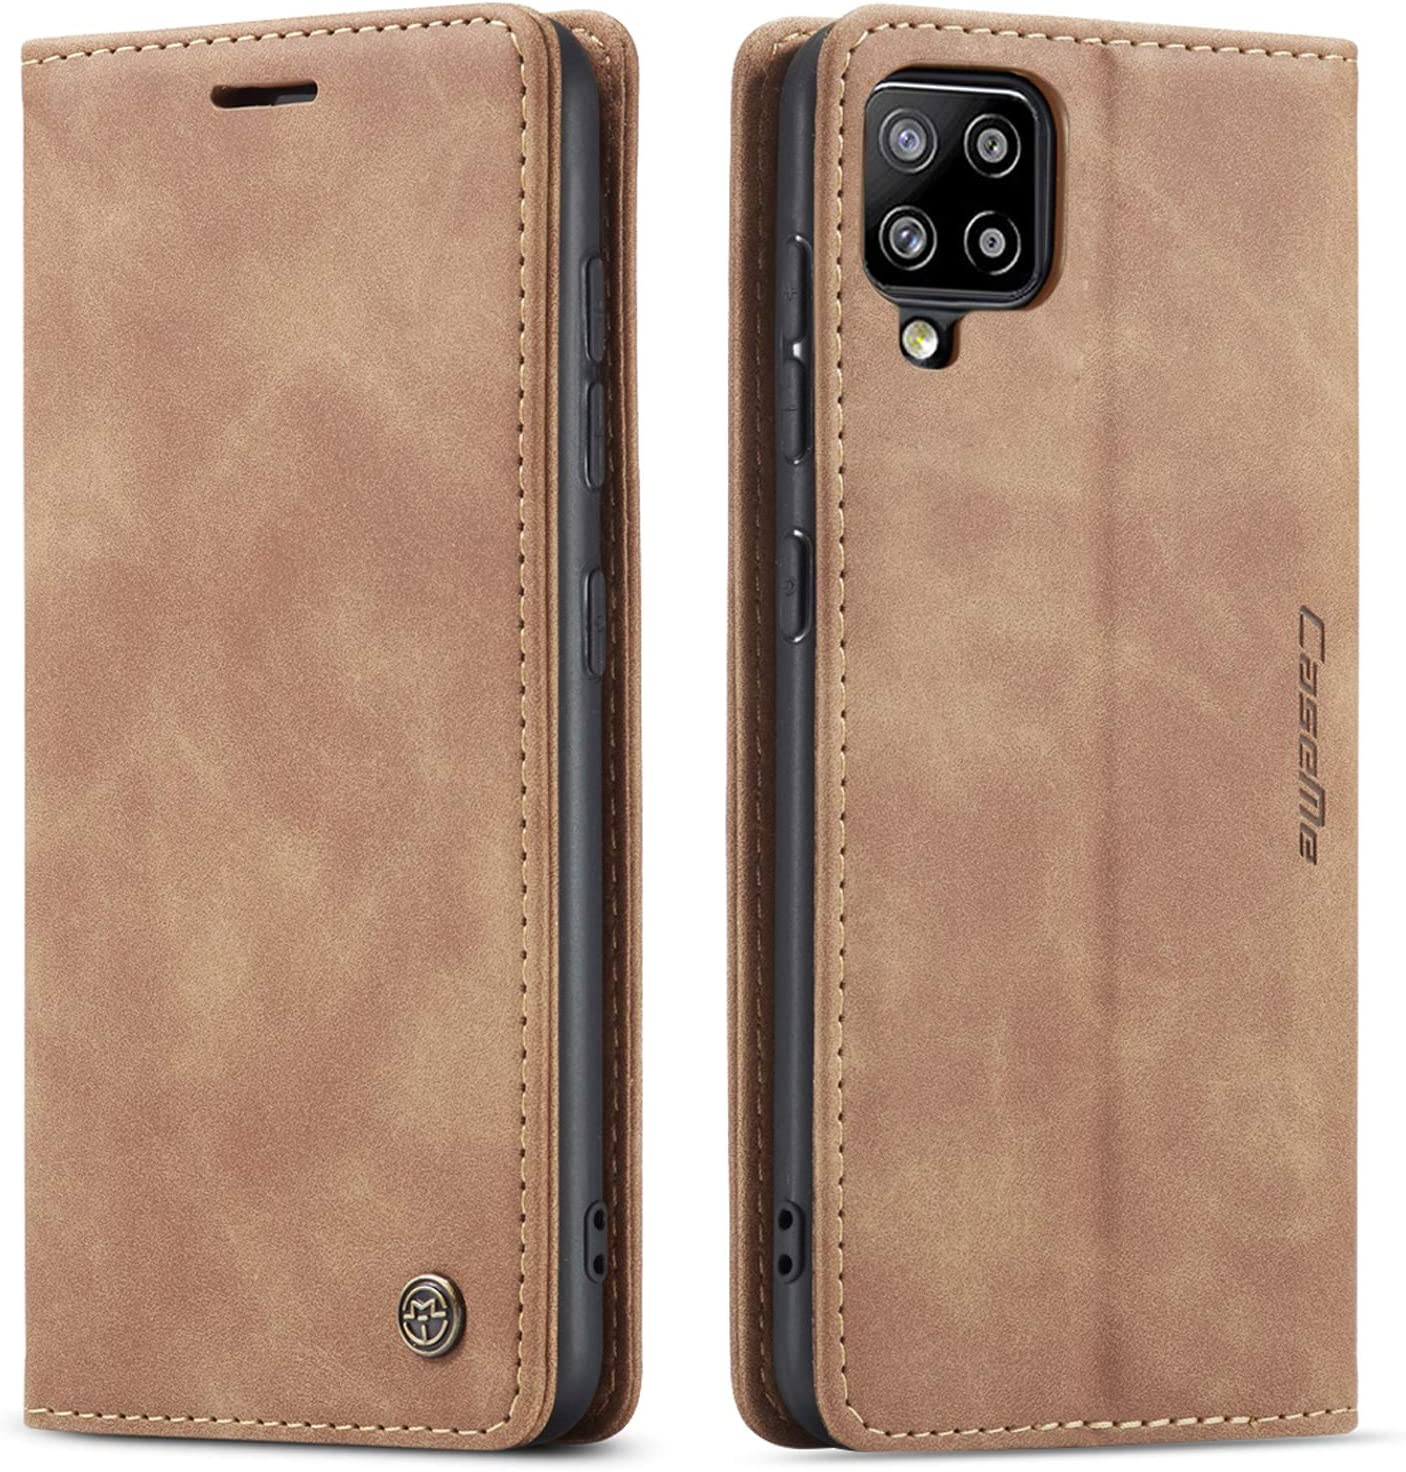 Kowauri Flip Case for Samsung Galaxy A42 5G,Leather Wallet Case Classic Design with Card Slot and Magnetic Closure Flip Fold Case for Samsung Galaxy A42 5G (Brown)